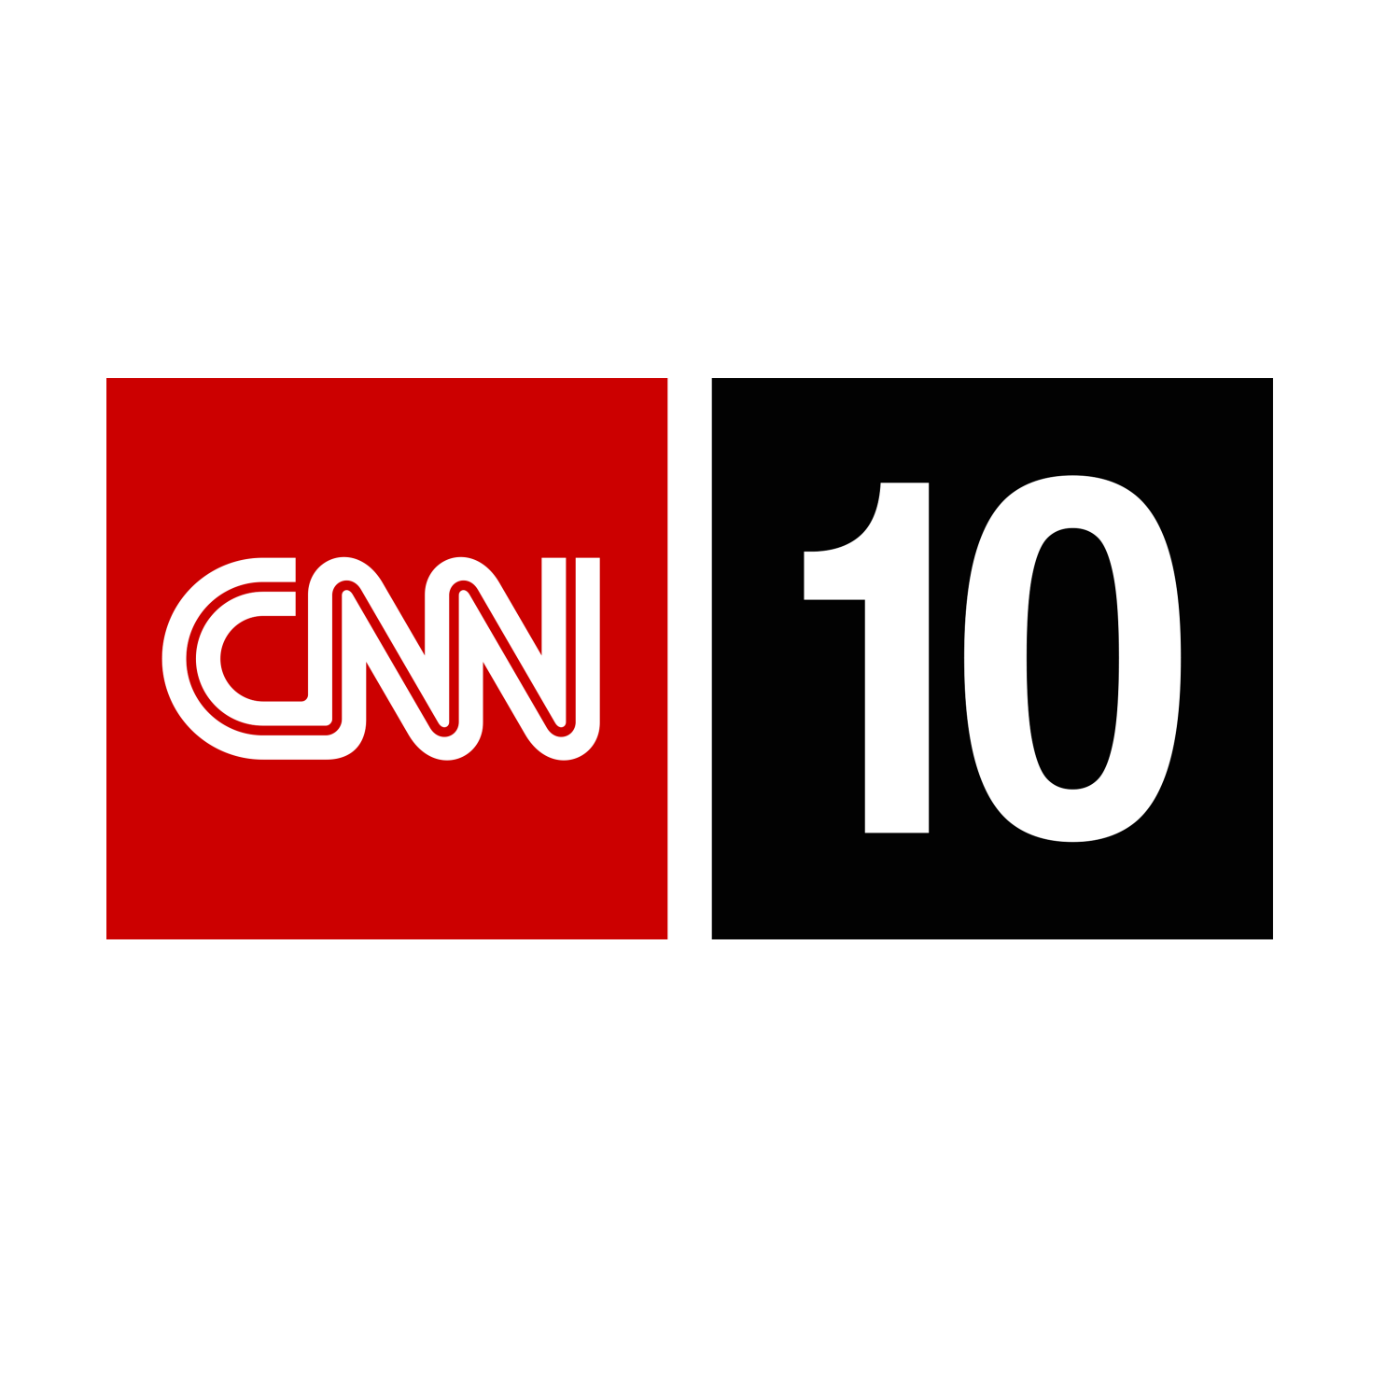 CNN Student News - March 4, 2013